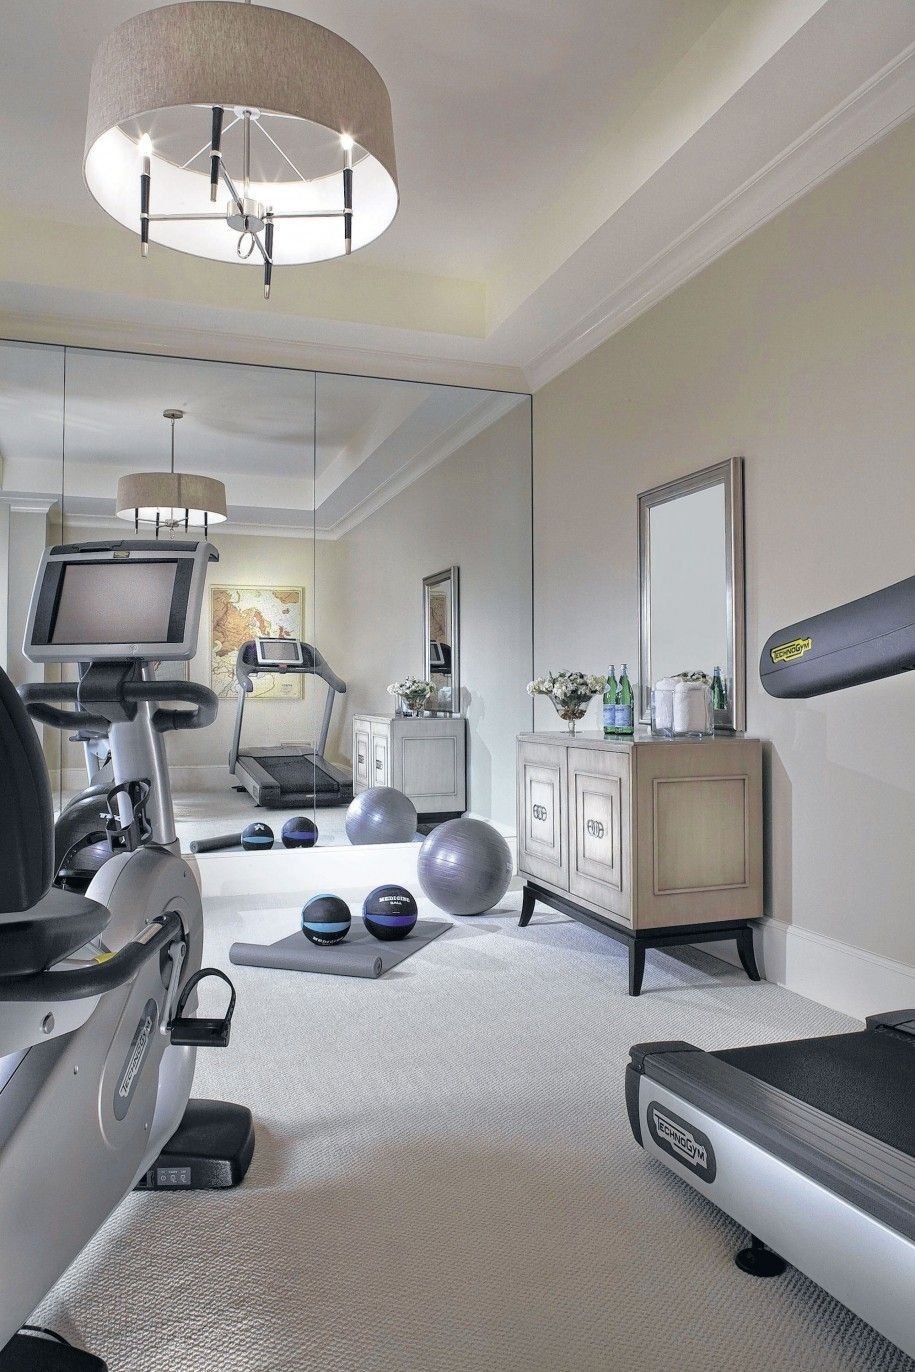 Excellent home gym room decorating ideas : extraordinary home gym